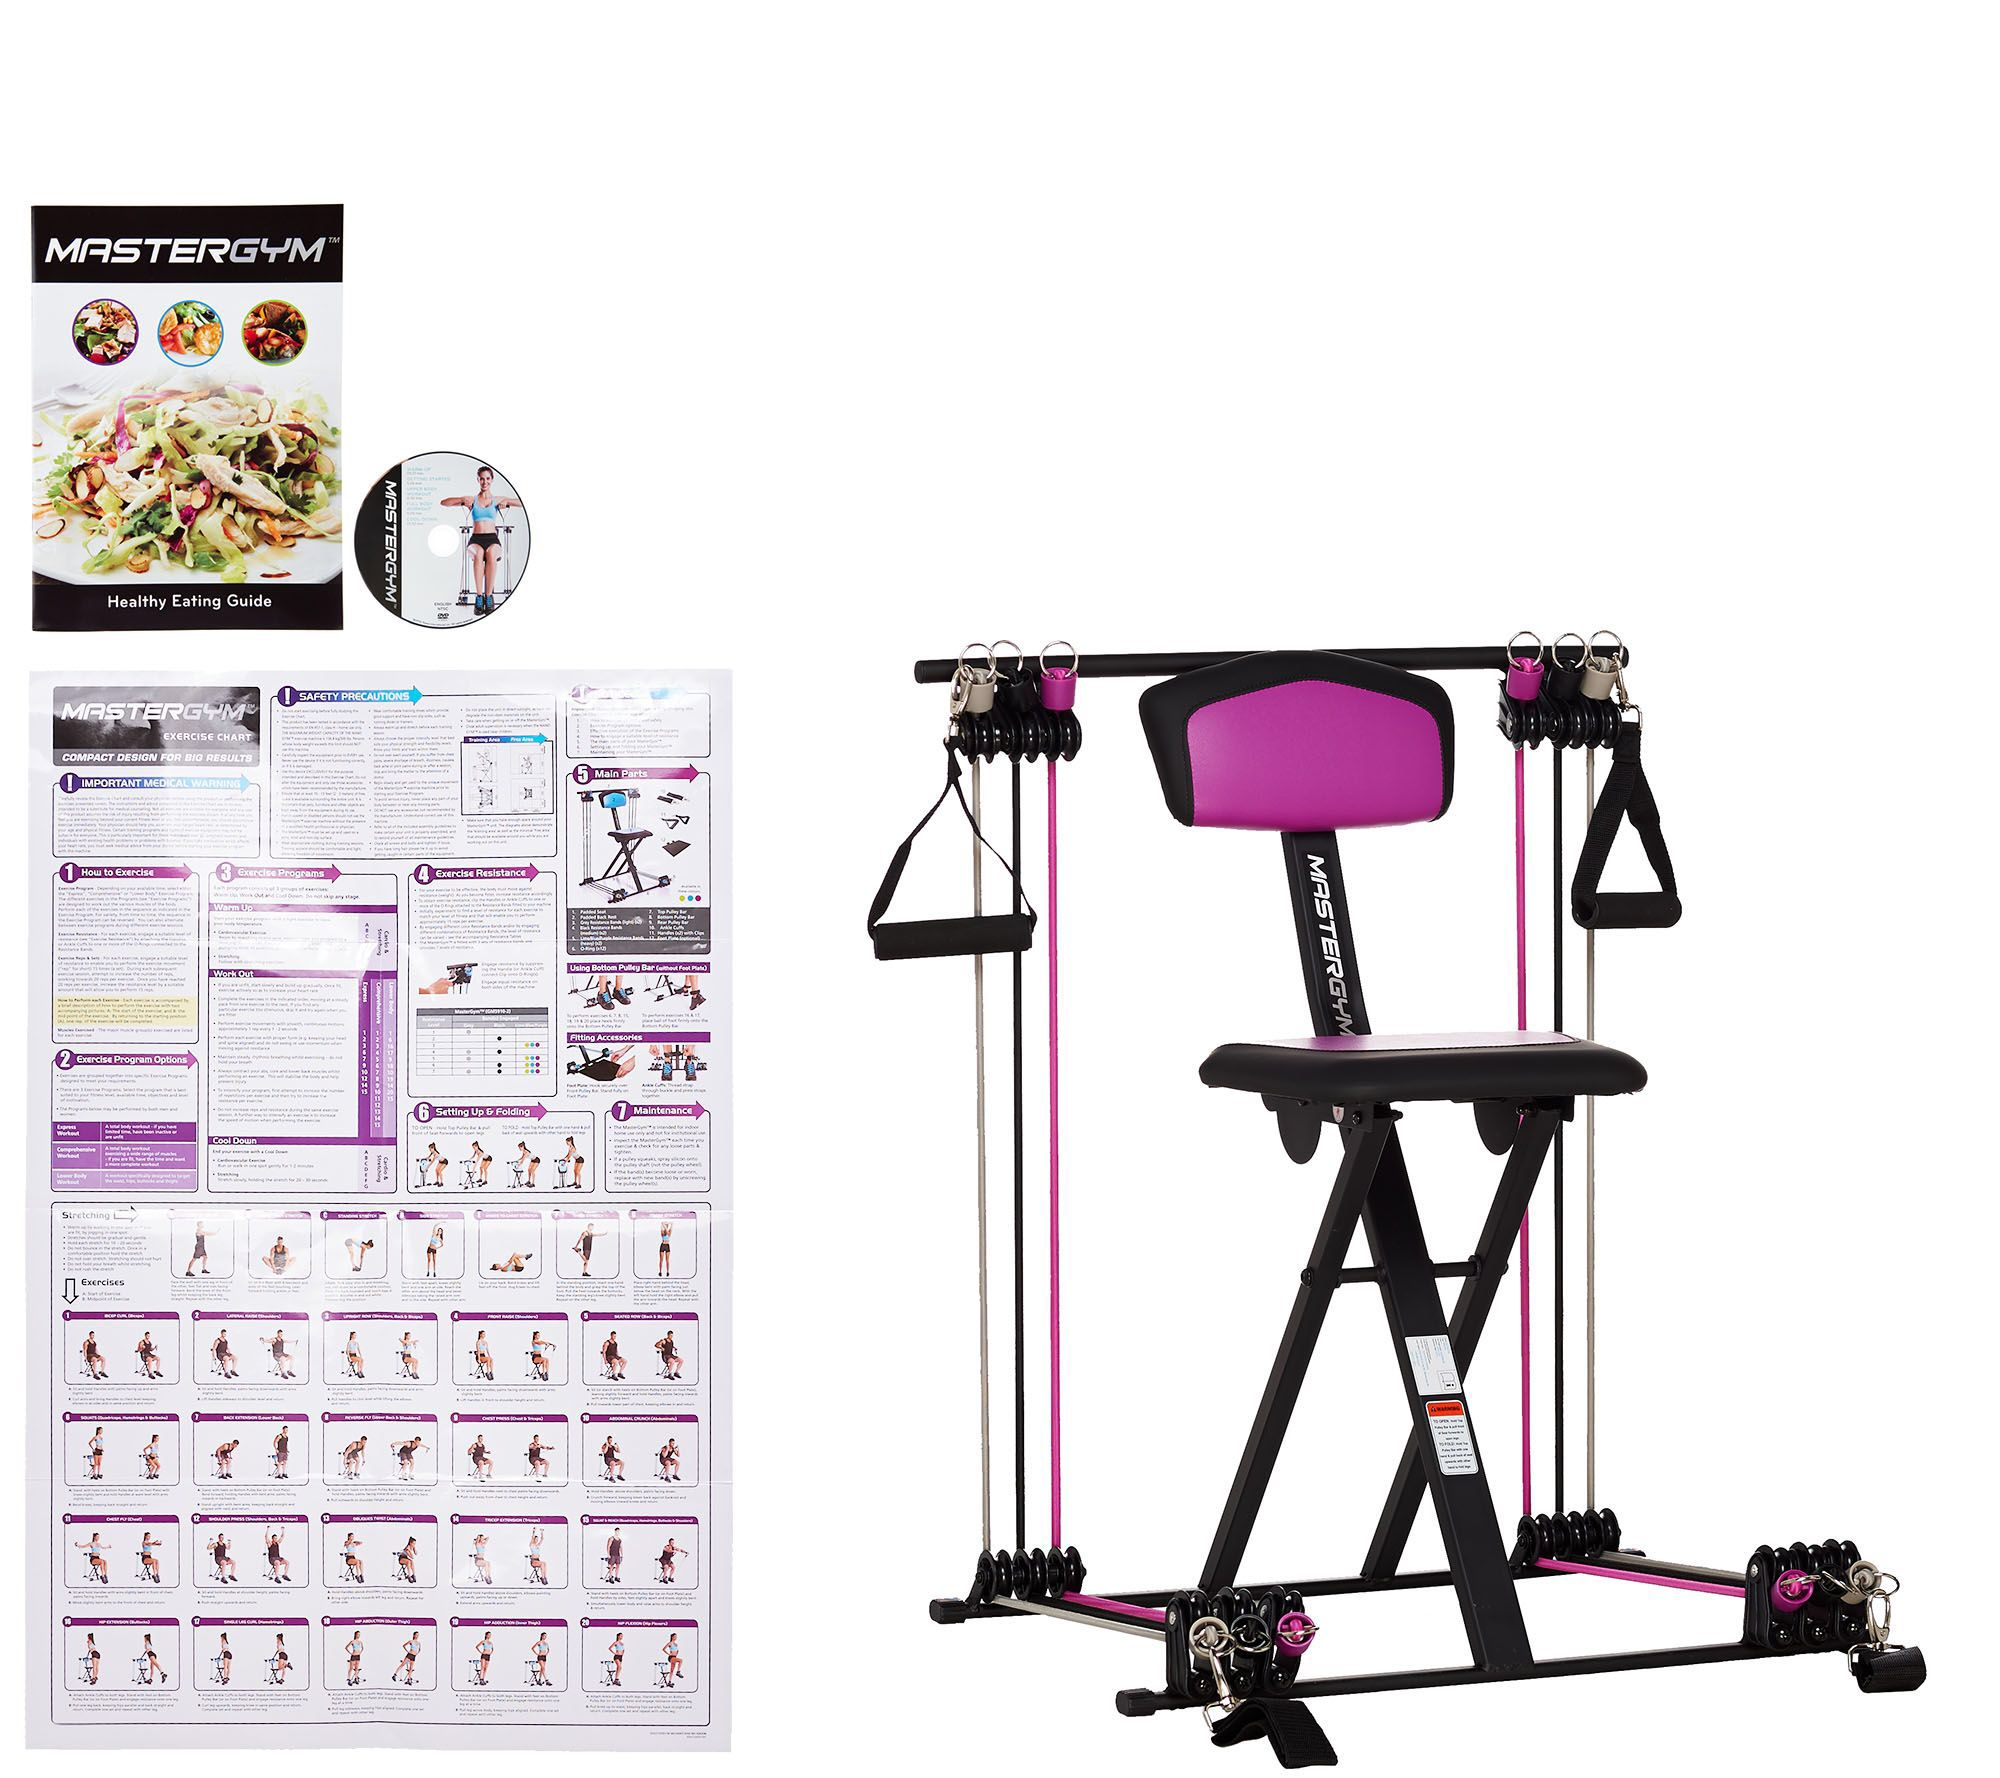 Master Gym Compact Fitness Chair With Dvd And Wall Chart Qvc Com At Home Gym Cardio Equipment Gym